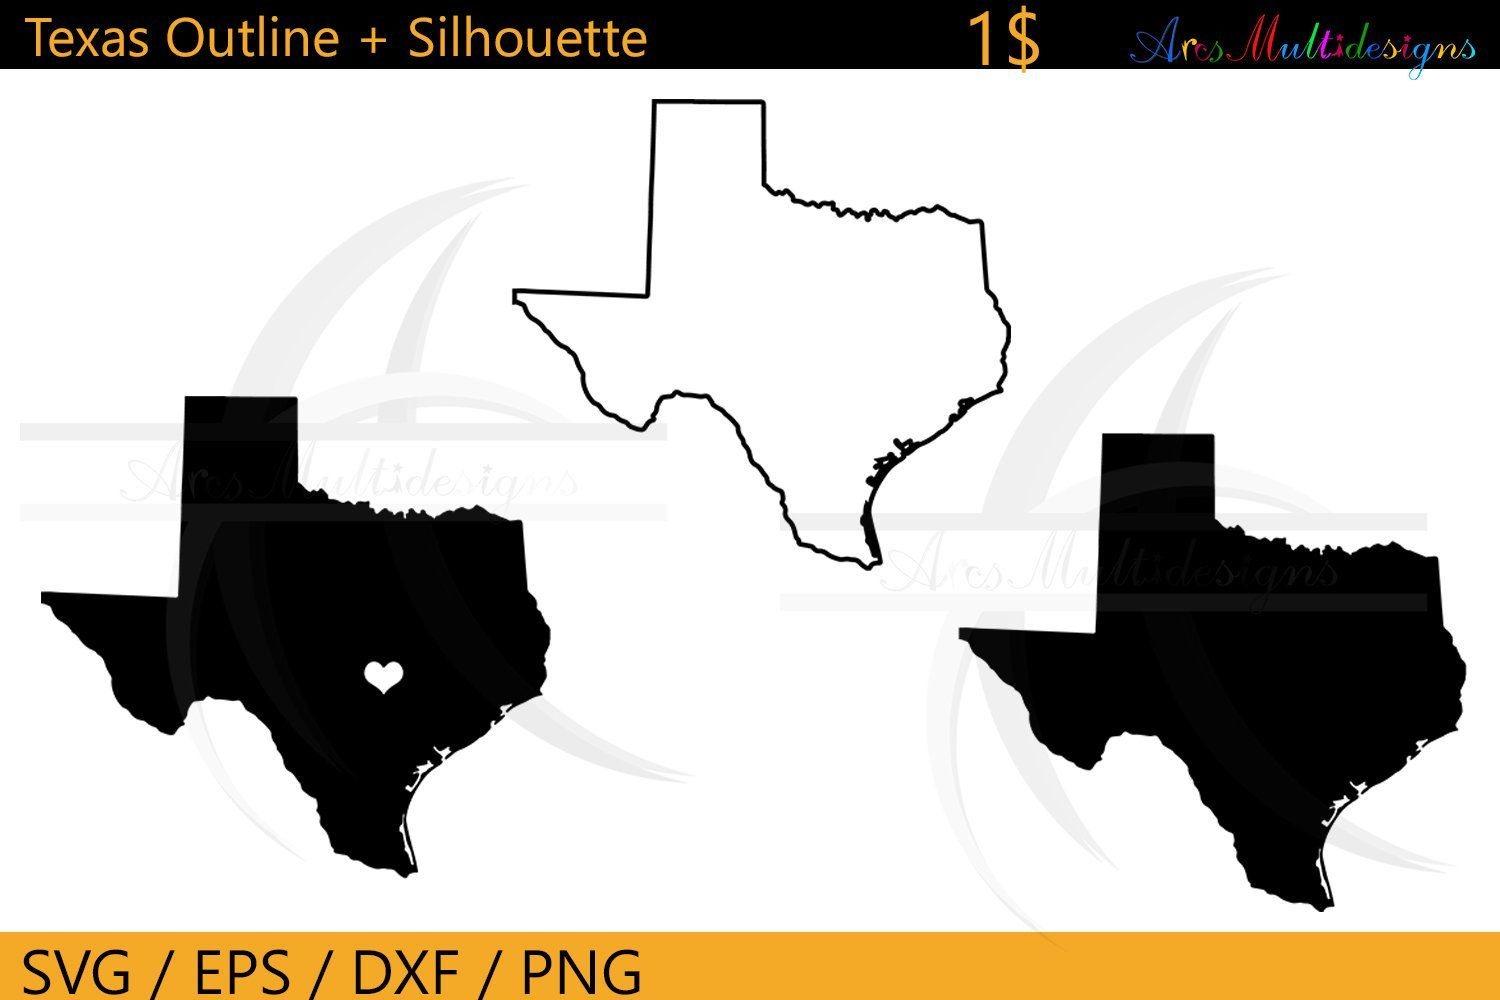 Texas Outline Map Texas States Outline Map United States Map Silhouette Texas Silhouette 1 Dollar By Arcsmul Texas Outline State Outline Texas Silhouette